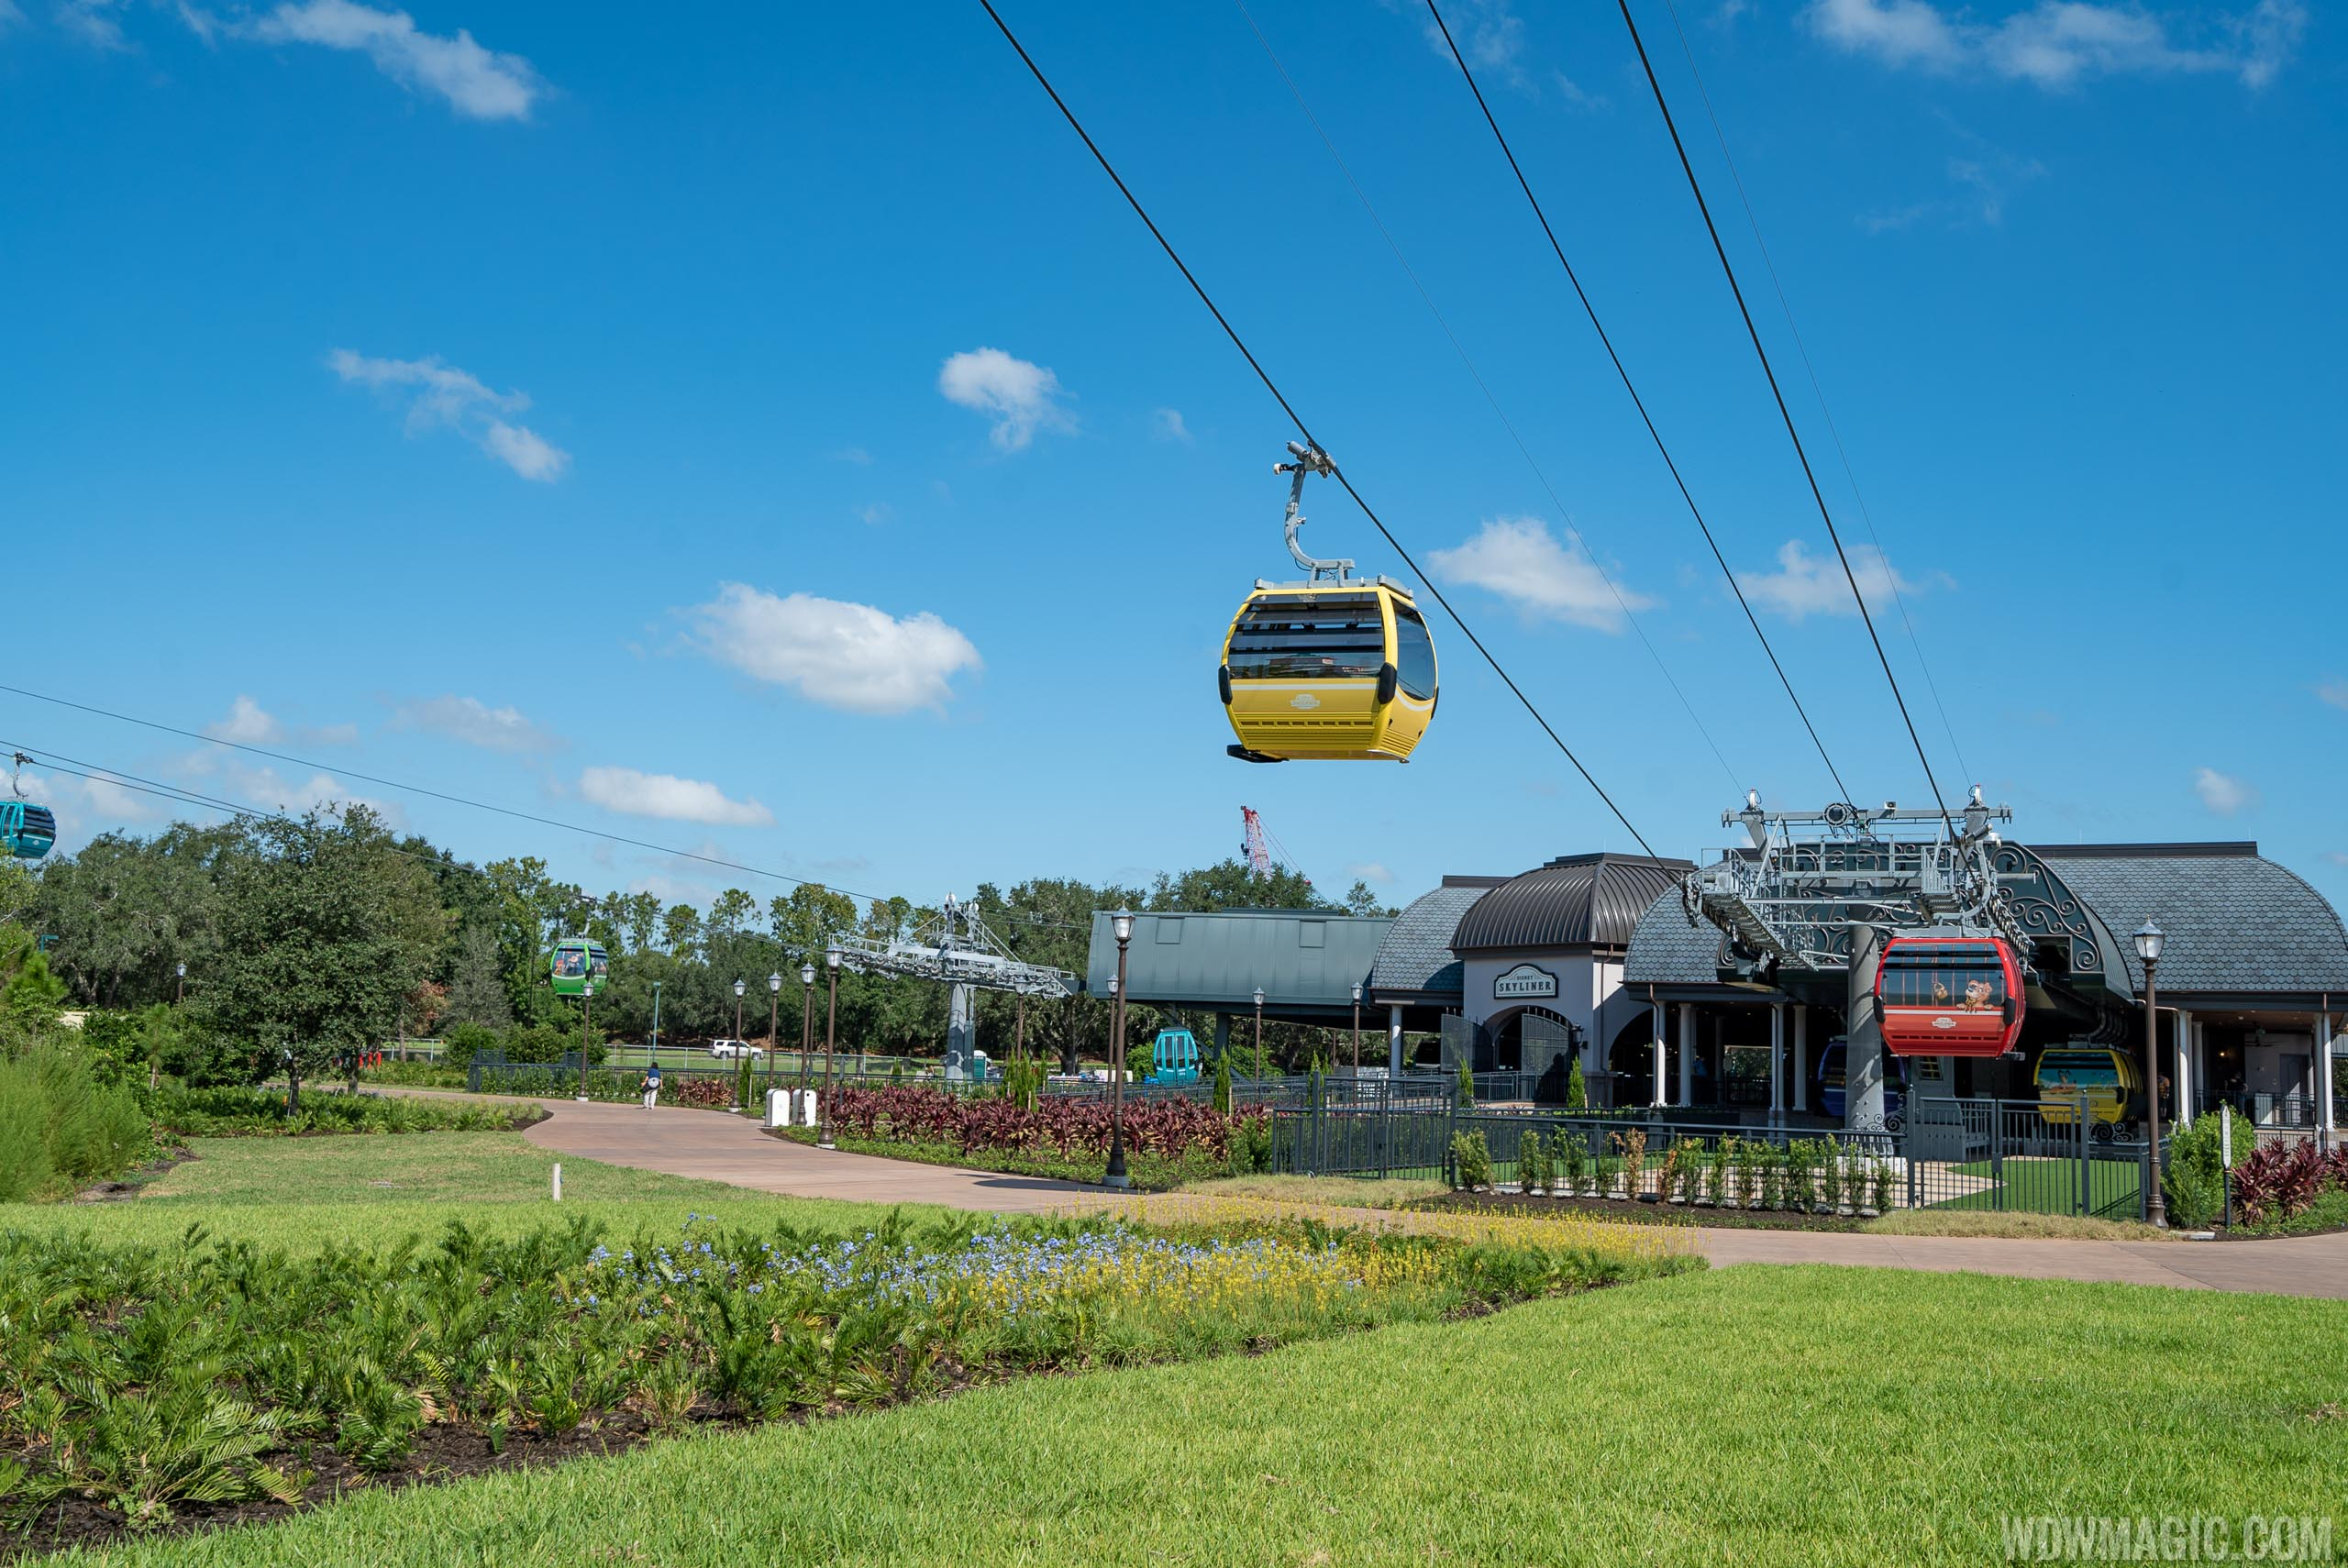 Disney Skyliner returns to service